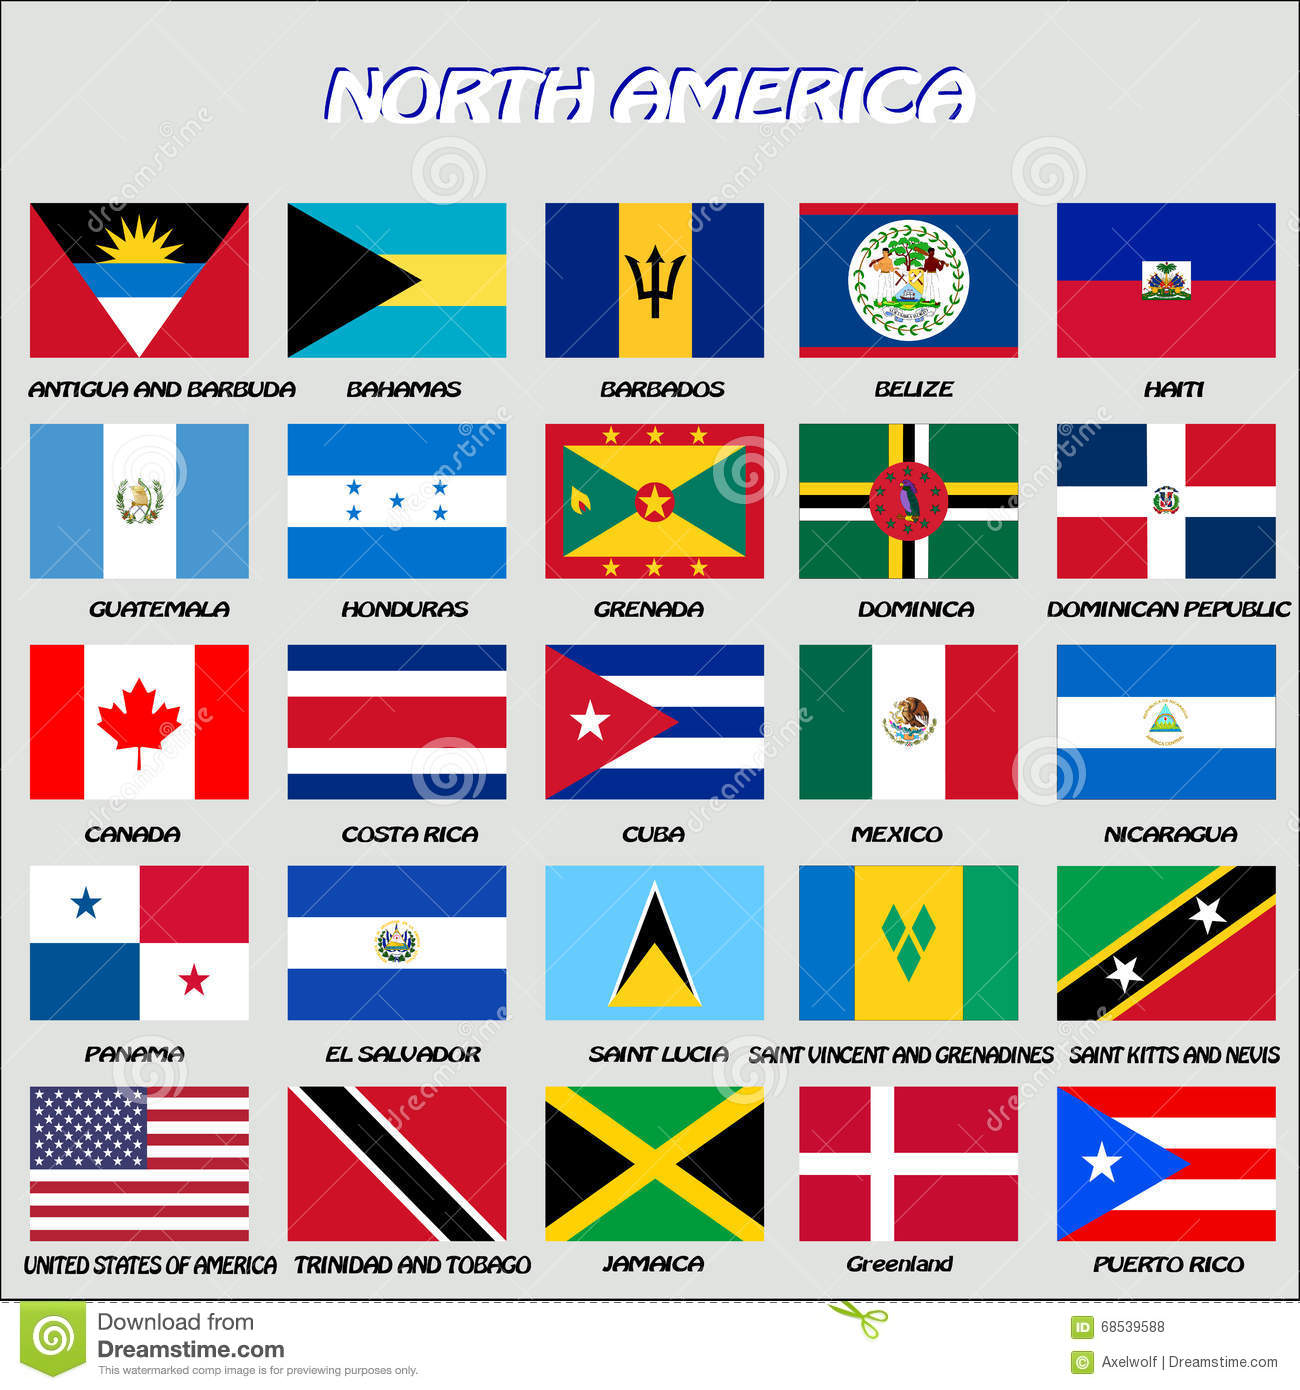 North American Flags Vector Stock Vector Illustration Of Business Globe 68539588